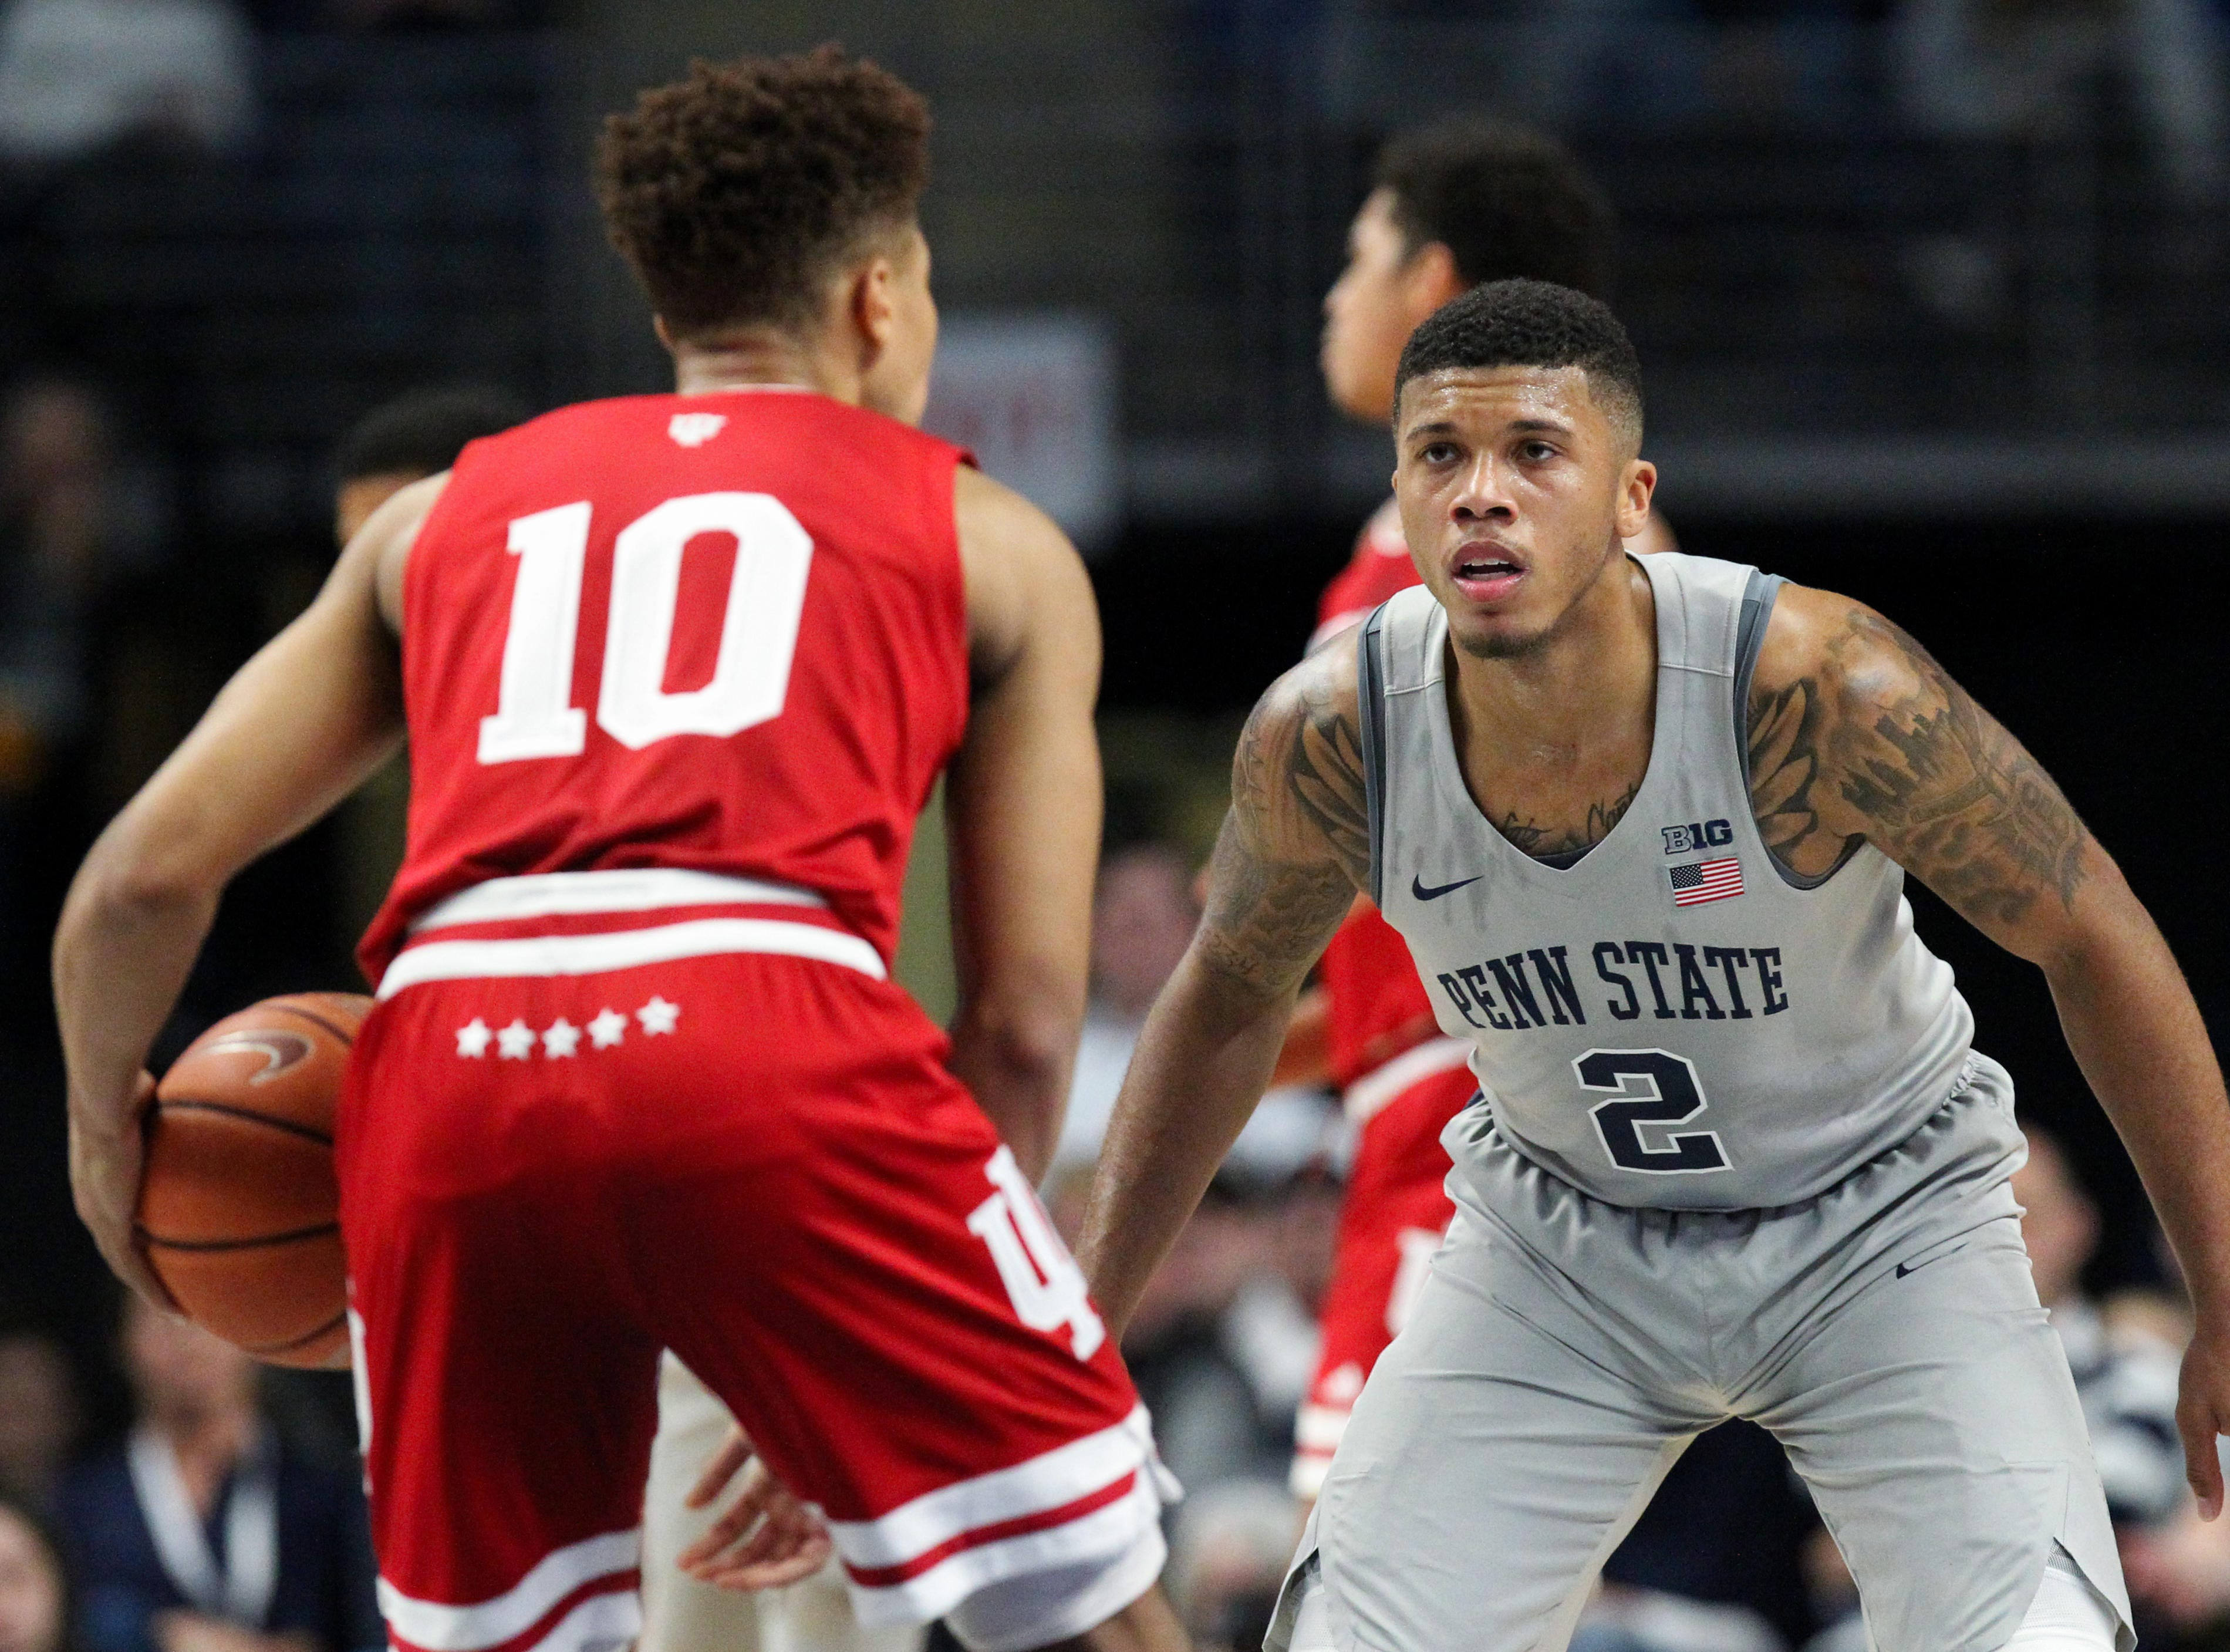 Dec 4, 2018; University Park, PA, USA; Penn State Nittany Lions guard Myles Dread (2) eyes Indiana Hoosiers guard Rob Phinisee (10) as he brings the ball up court during the first half at Bryce Jordan Center. Indiana defeated Penn State 64-62. Mandatory Credit: Matthew O'Haren-USA TODAY Sports